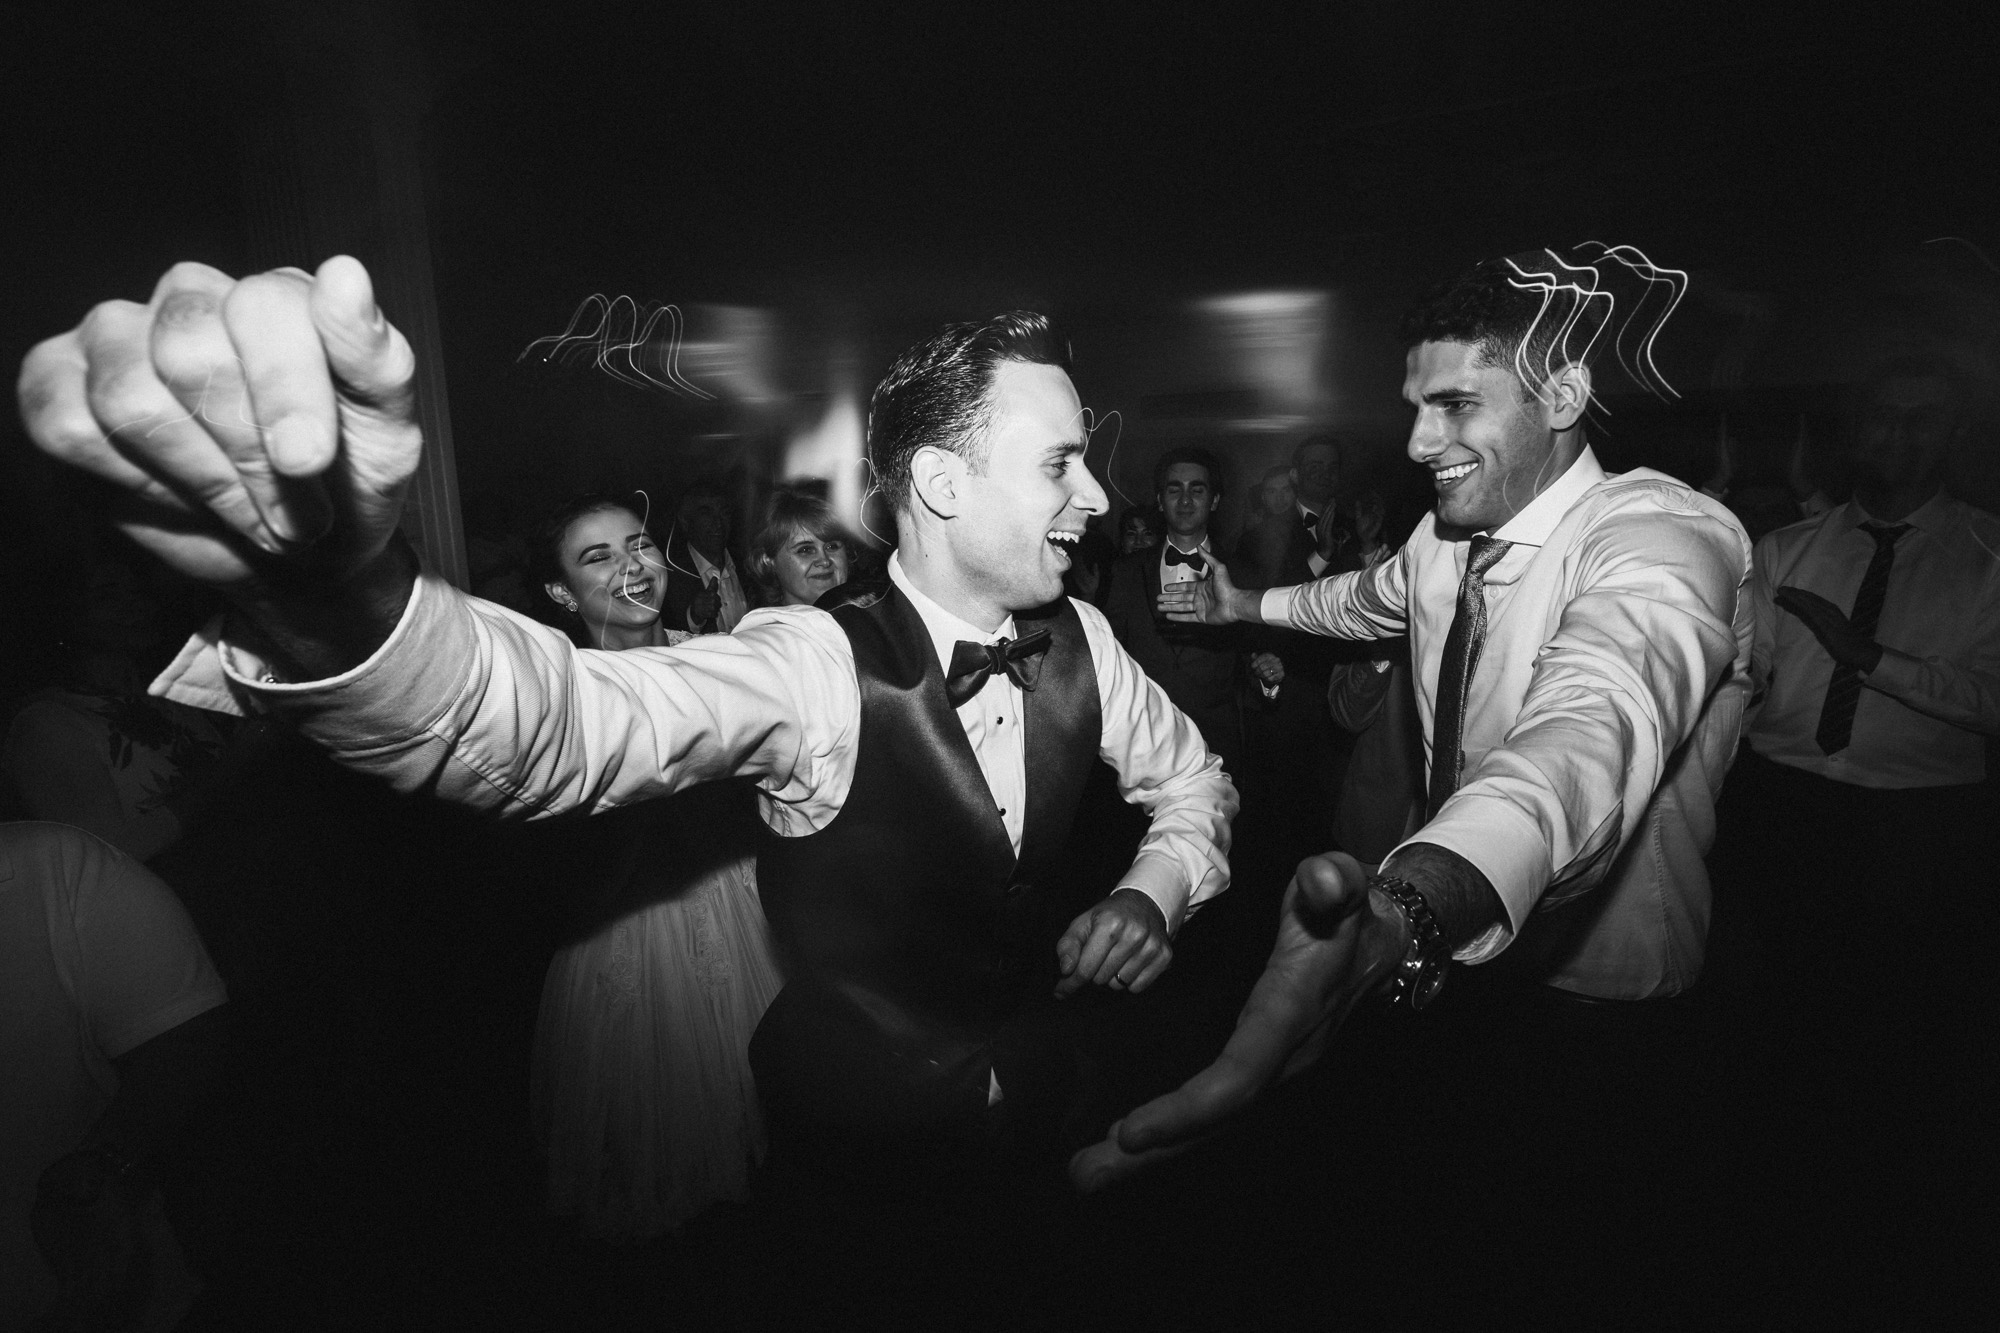 Brooklyn NYC wedding photographer Boris Zaretsky Long Island wedding Royalton roslyn country club_B2C2023 copy.jpg